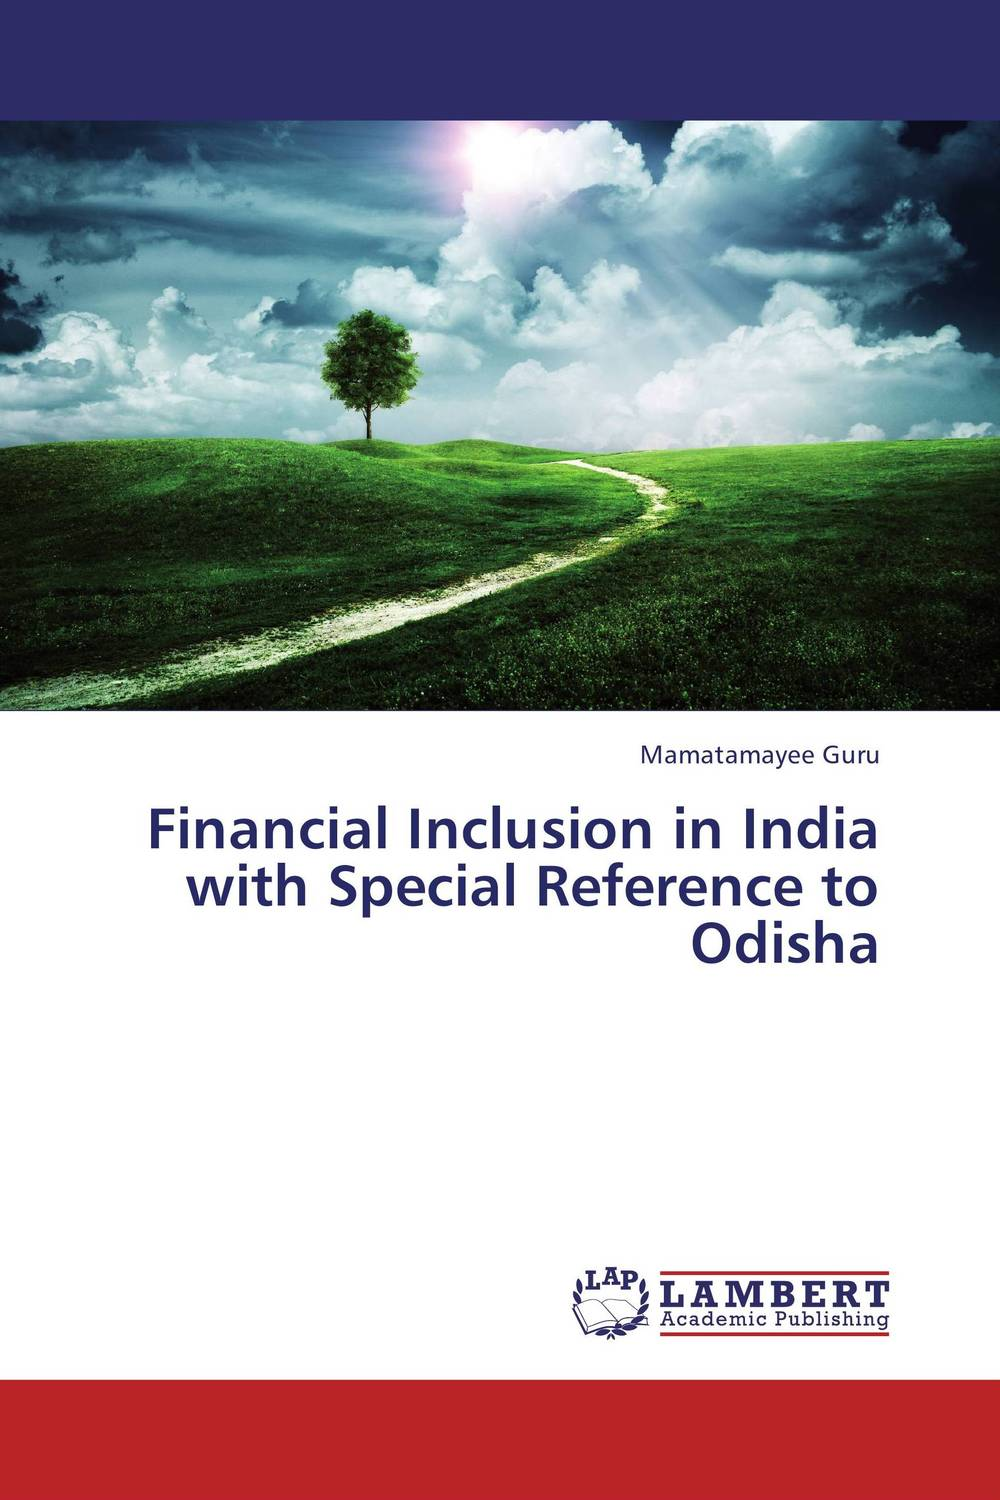 Financial Inclusion in India with Special Reference to Odisha crockid machine power бирюзовая